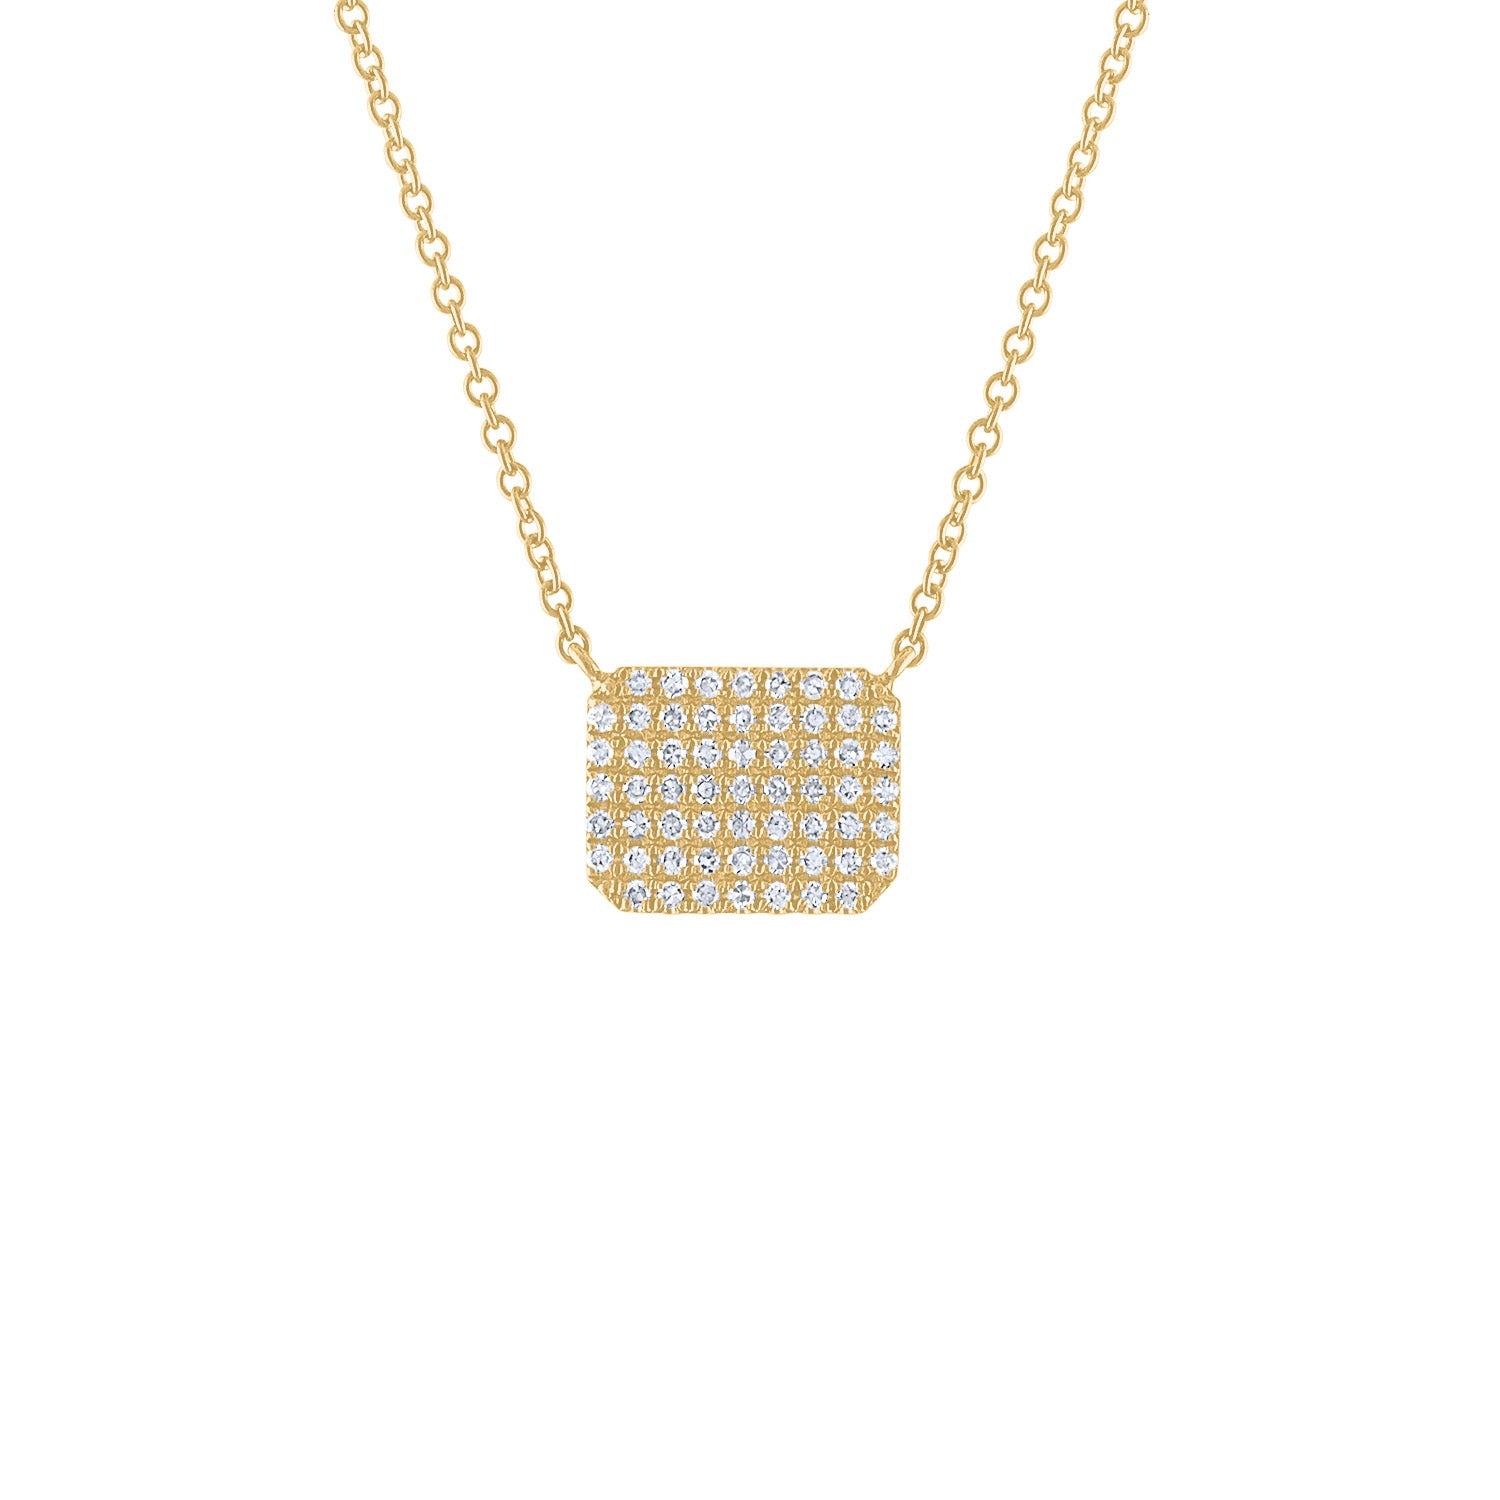 14KT GOLD PAVE DIAMOND HEXAGON NECKLACE